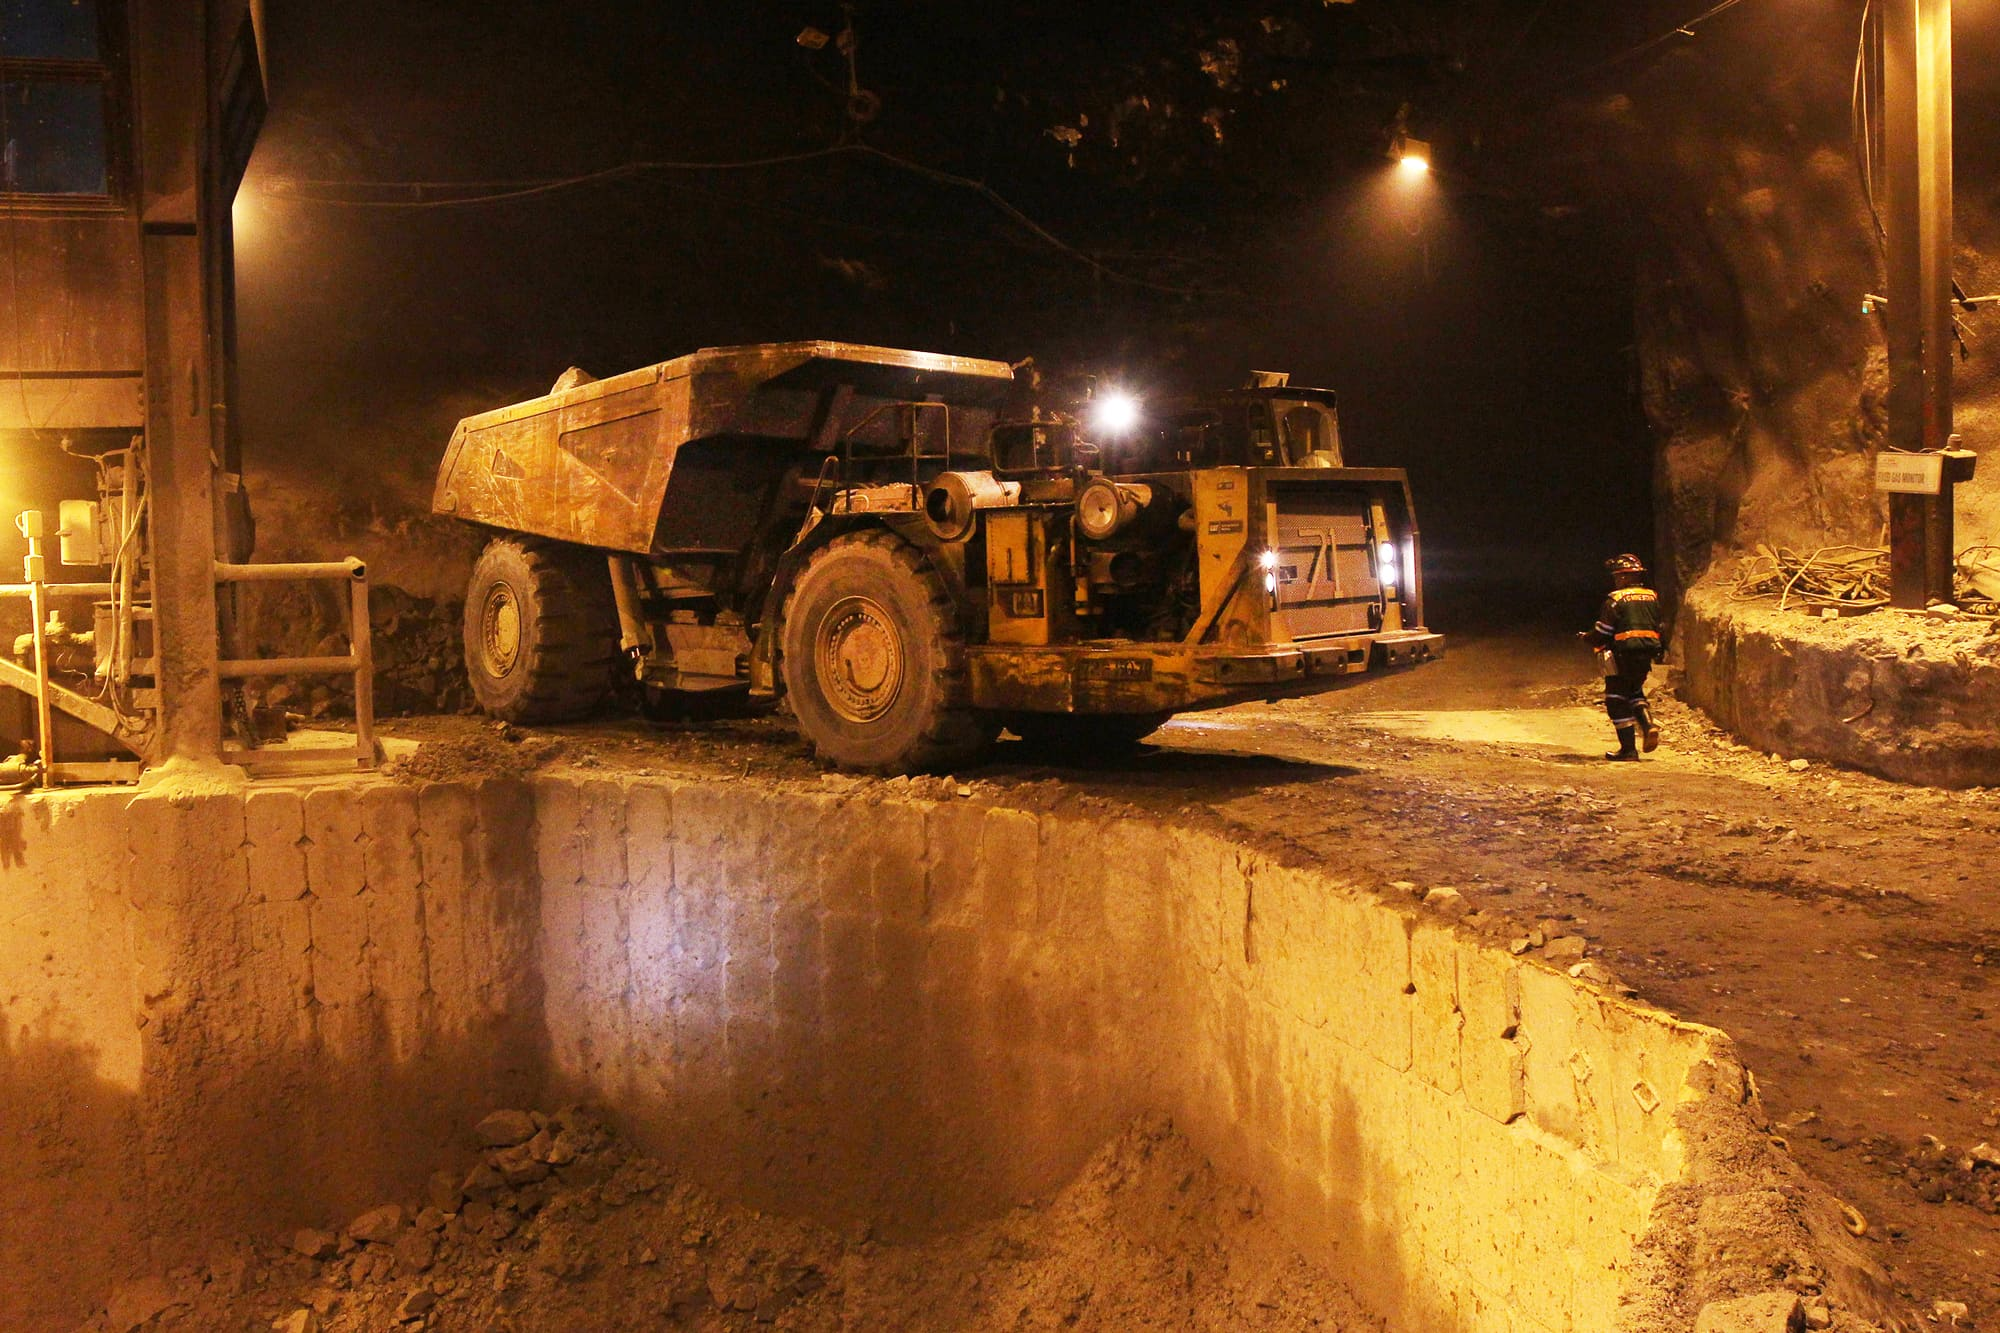 A dump truck is prepared to unload ore into a crusher at Freeport McMoRan's Grasberg copper and gold mining complex in Papua province, Indonesia.